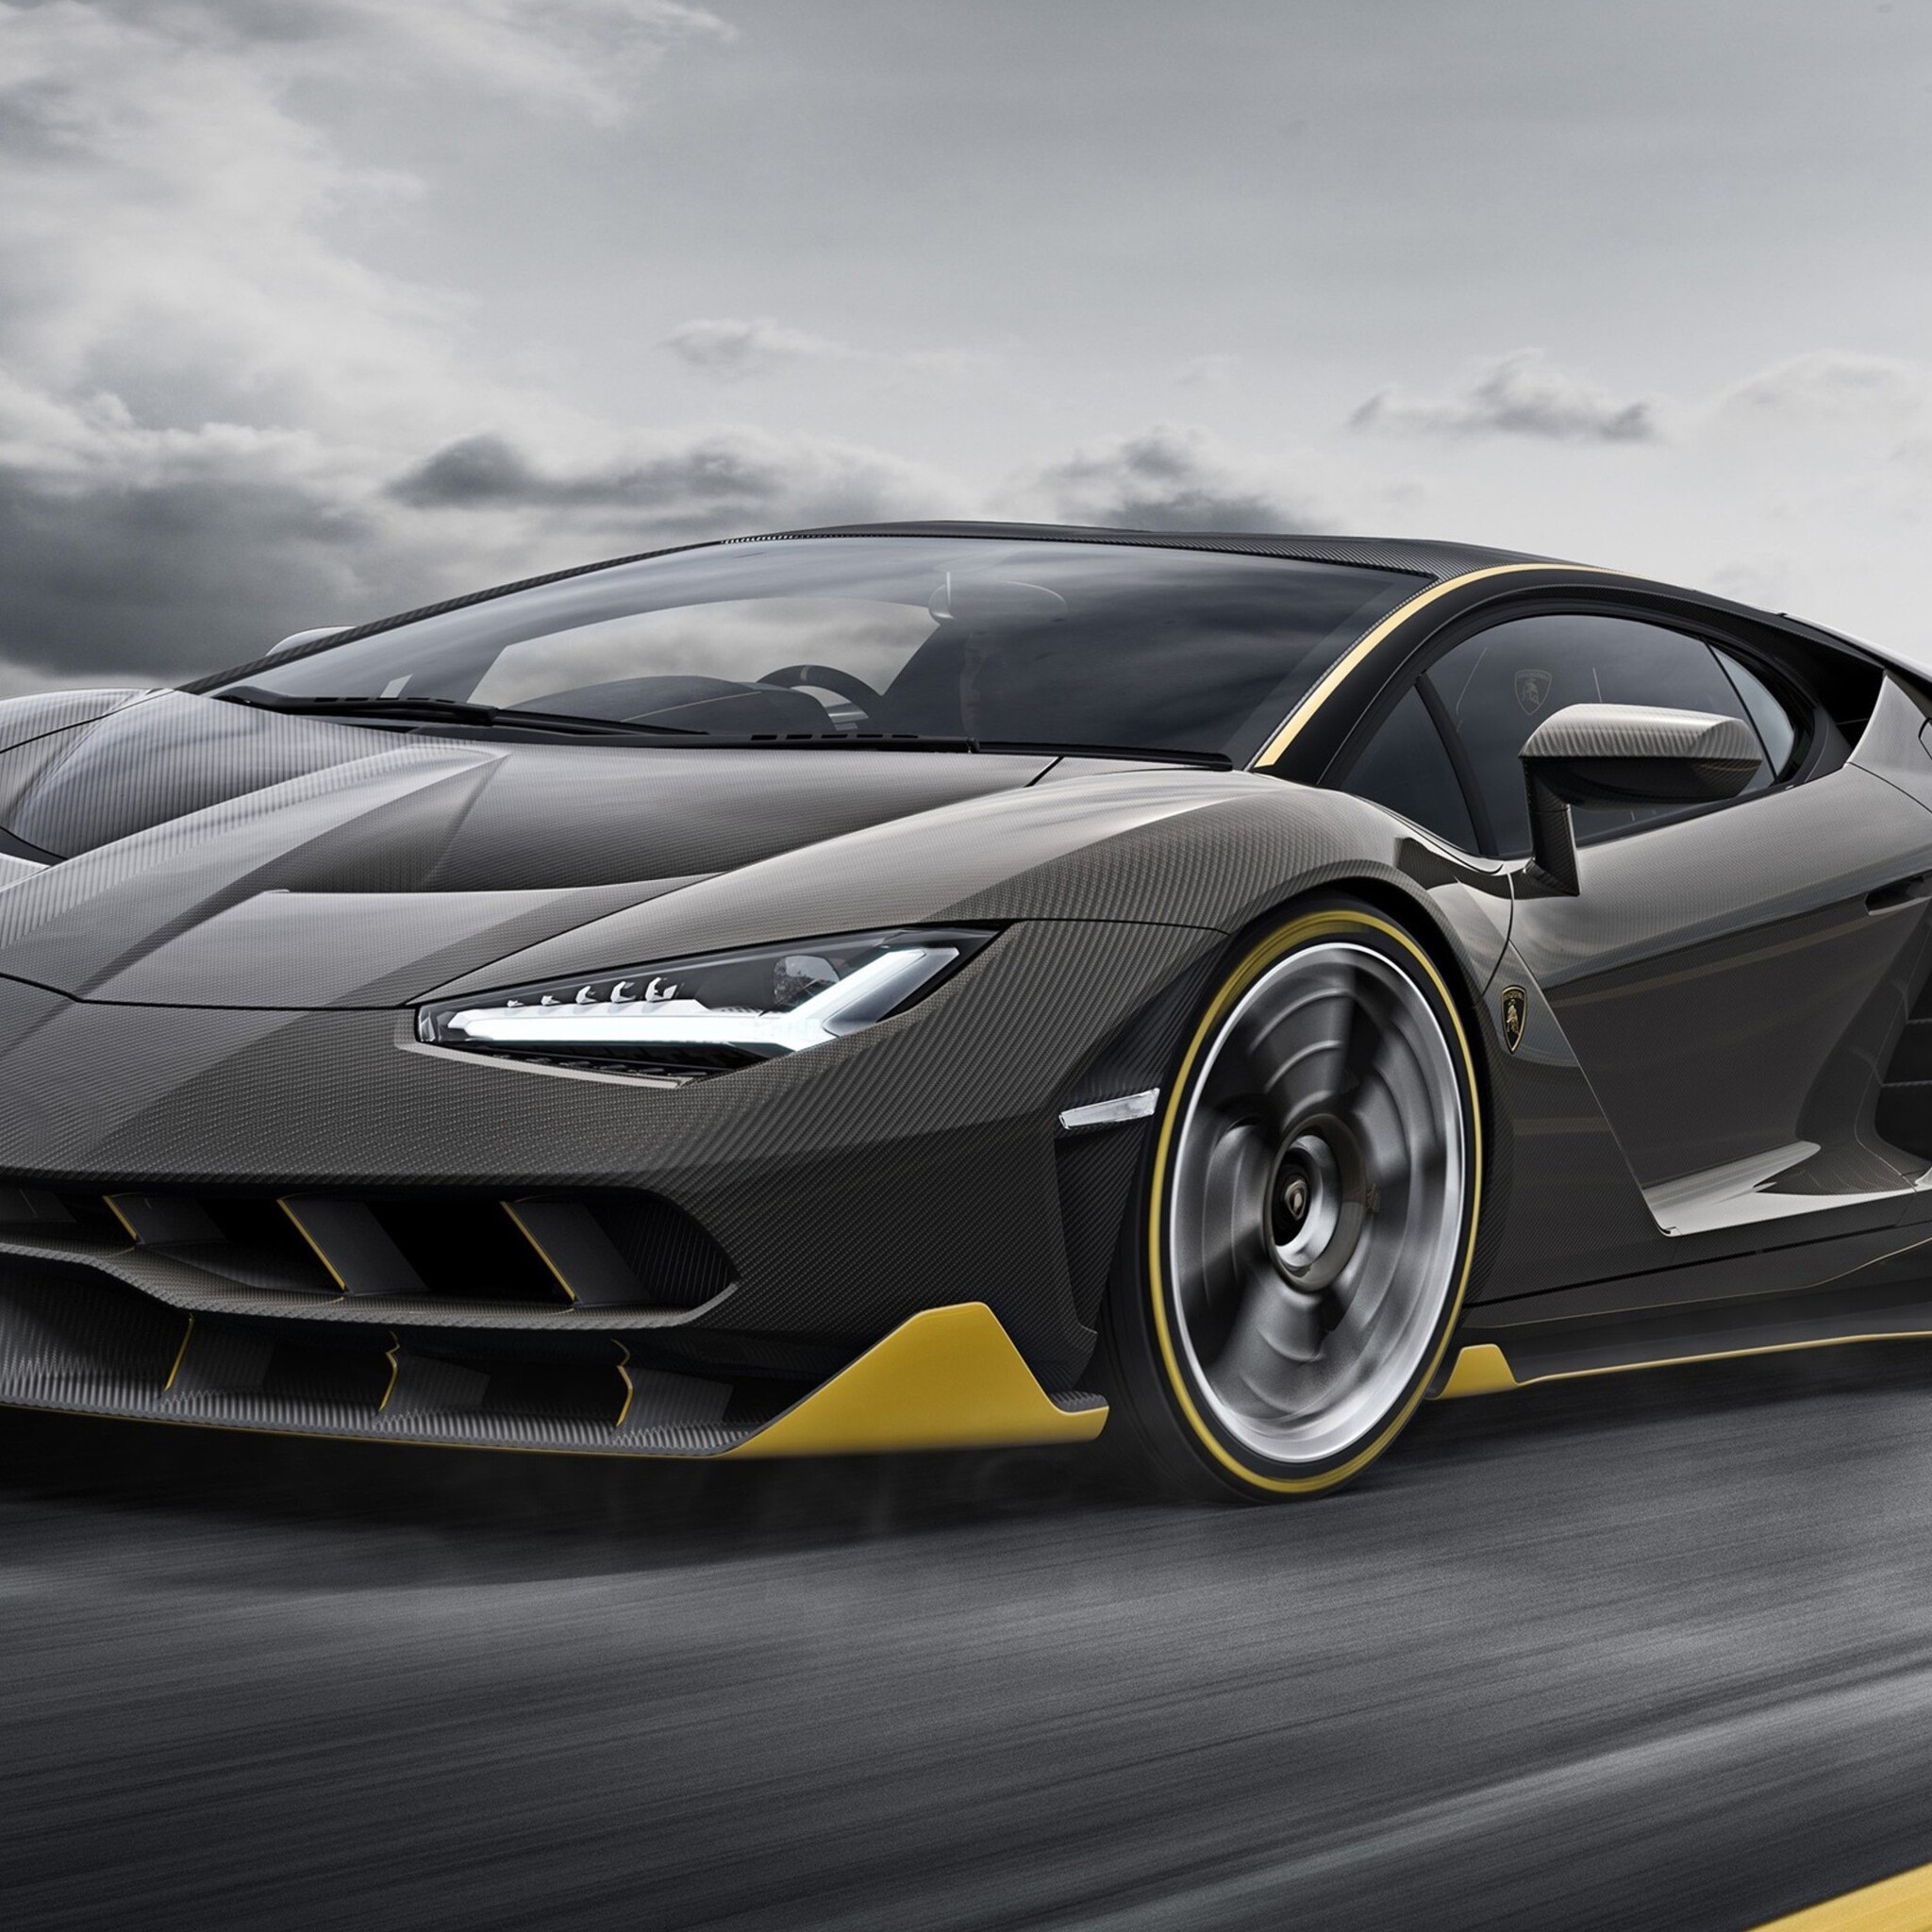 2048x2048 Lamborghini Centenario Super Car Ipad Air HD 4k